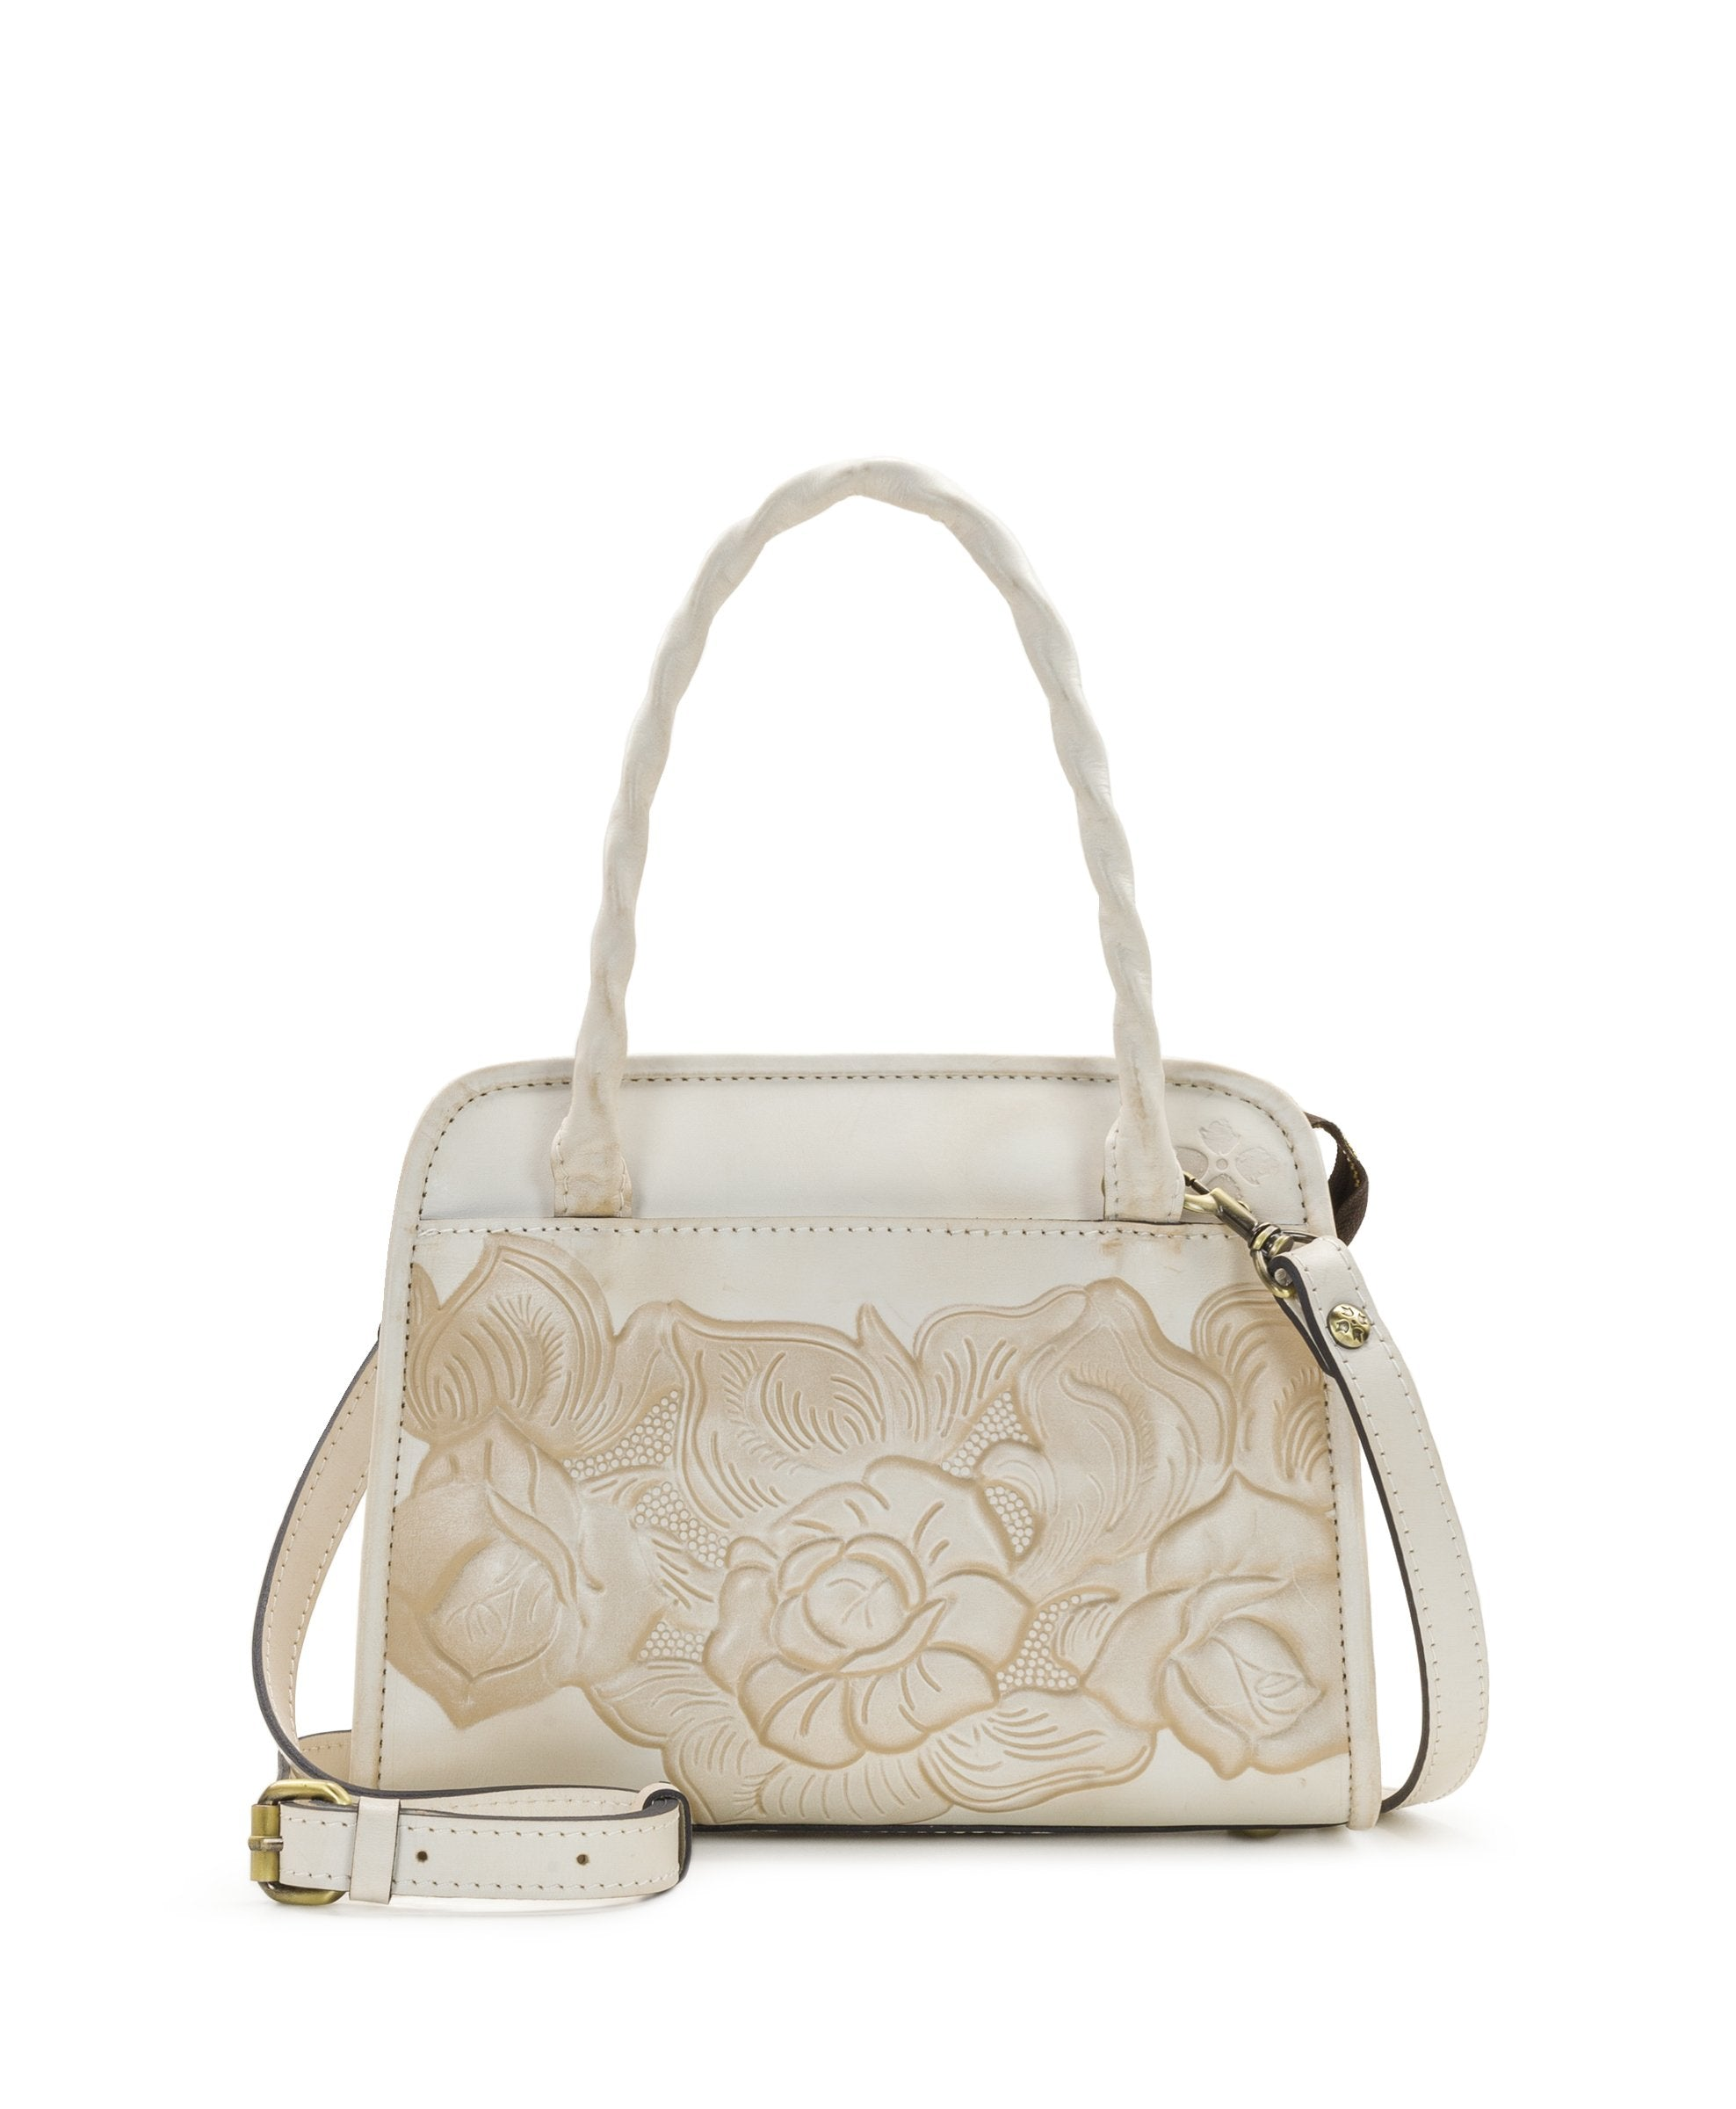 Paris Small Satchel - White Waxed Tooled